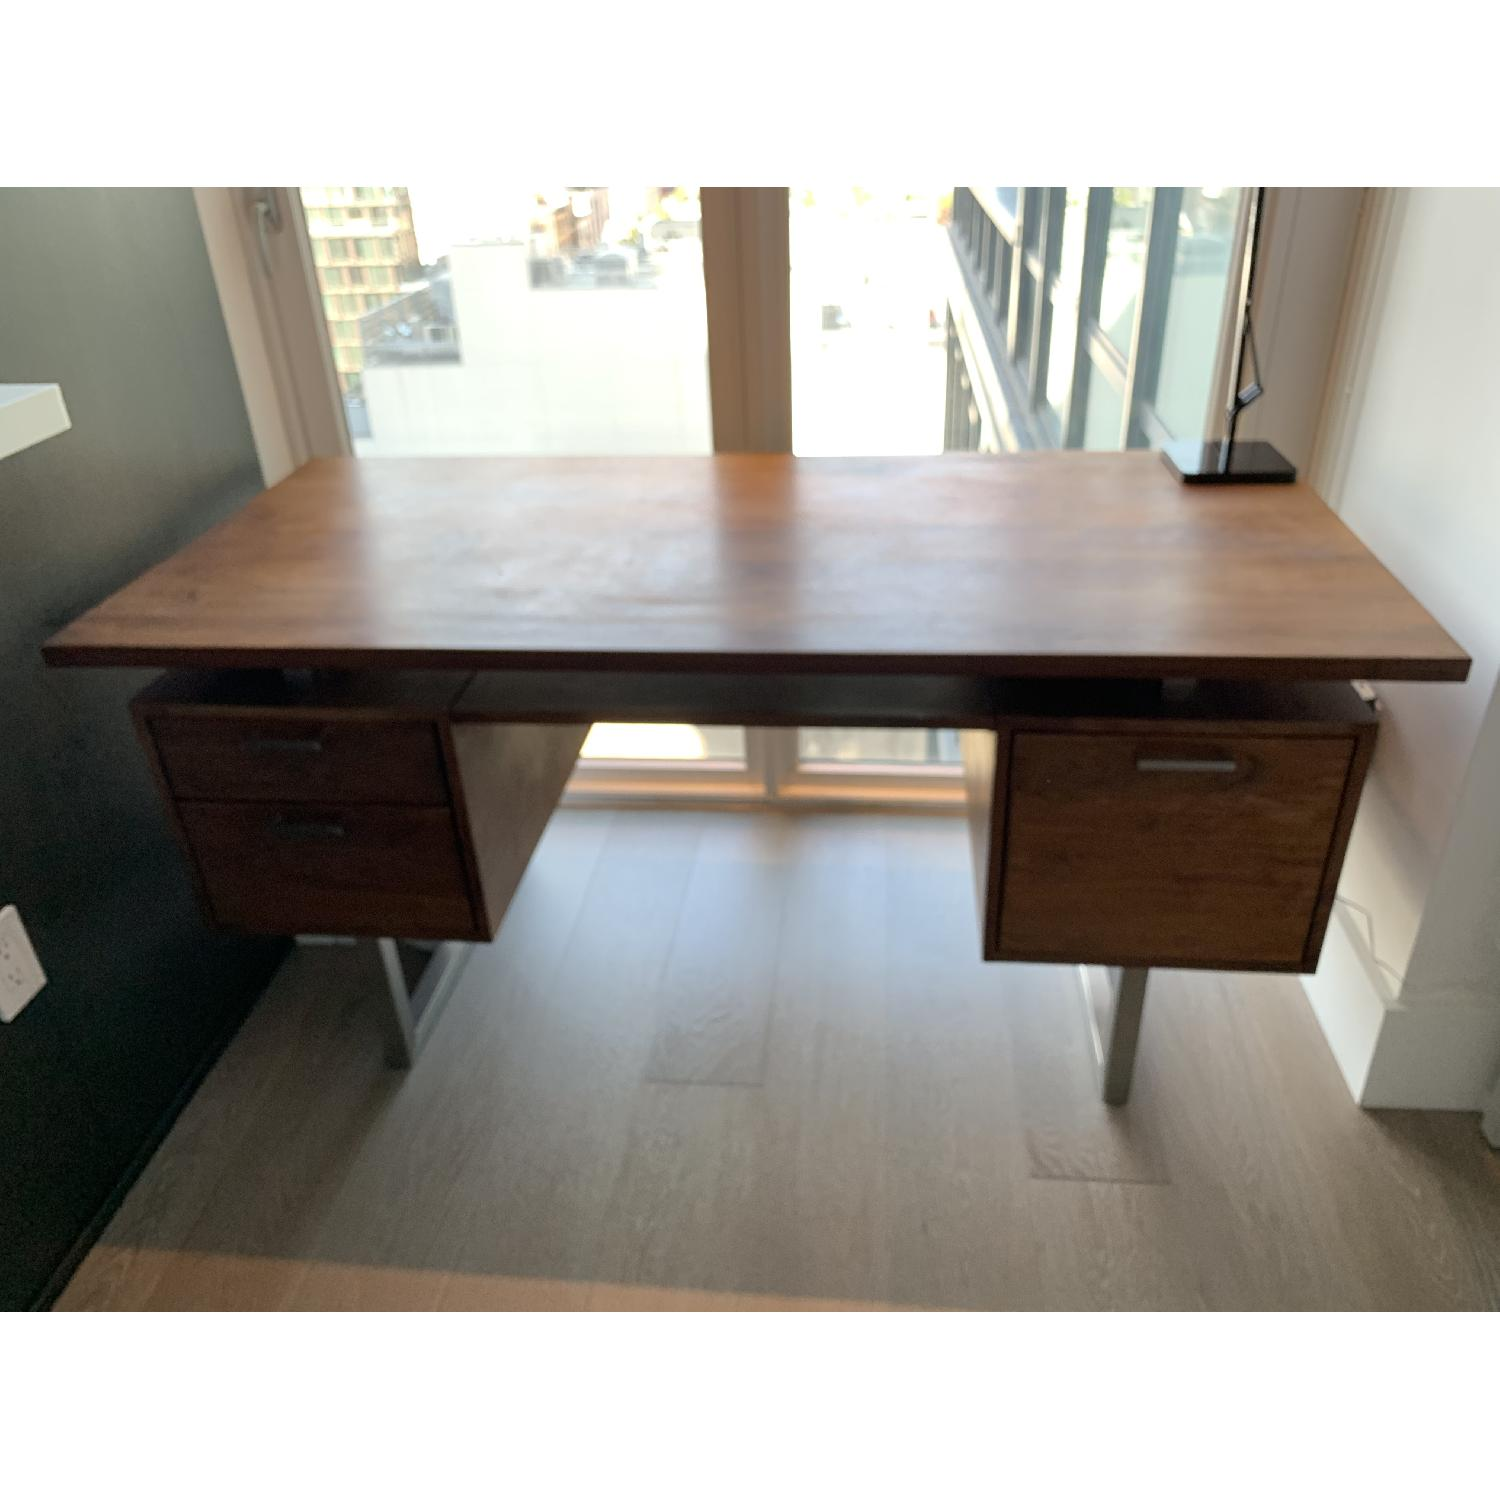 Crate & Barrel Clybourn Desk - image-2